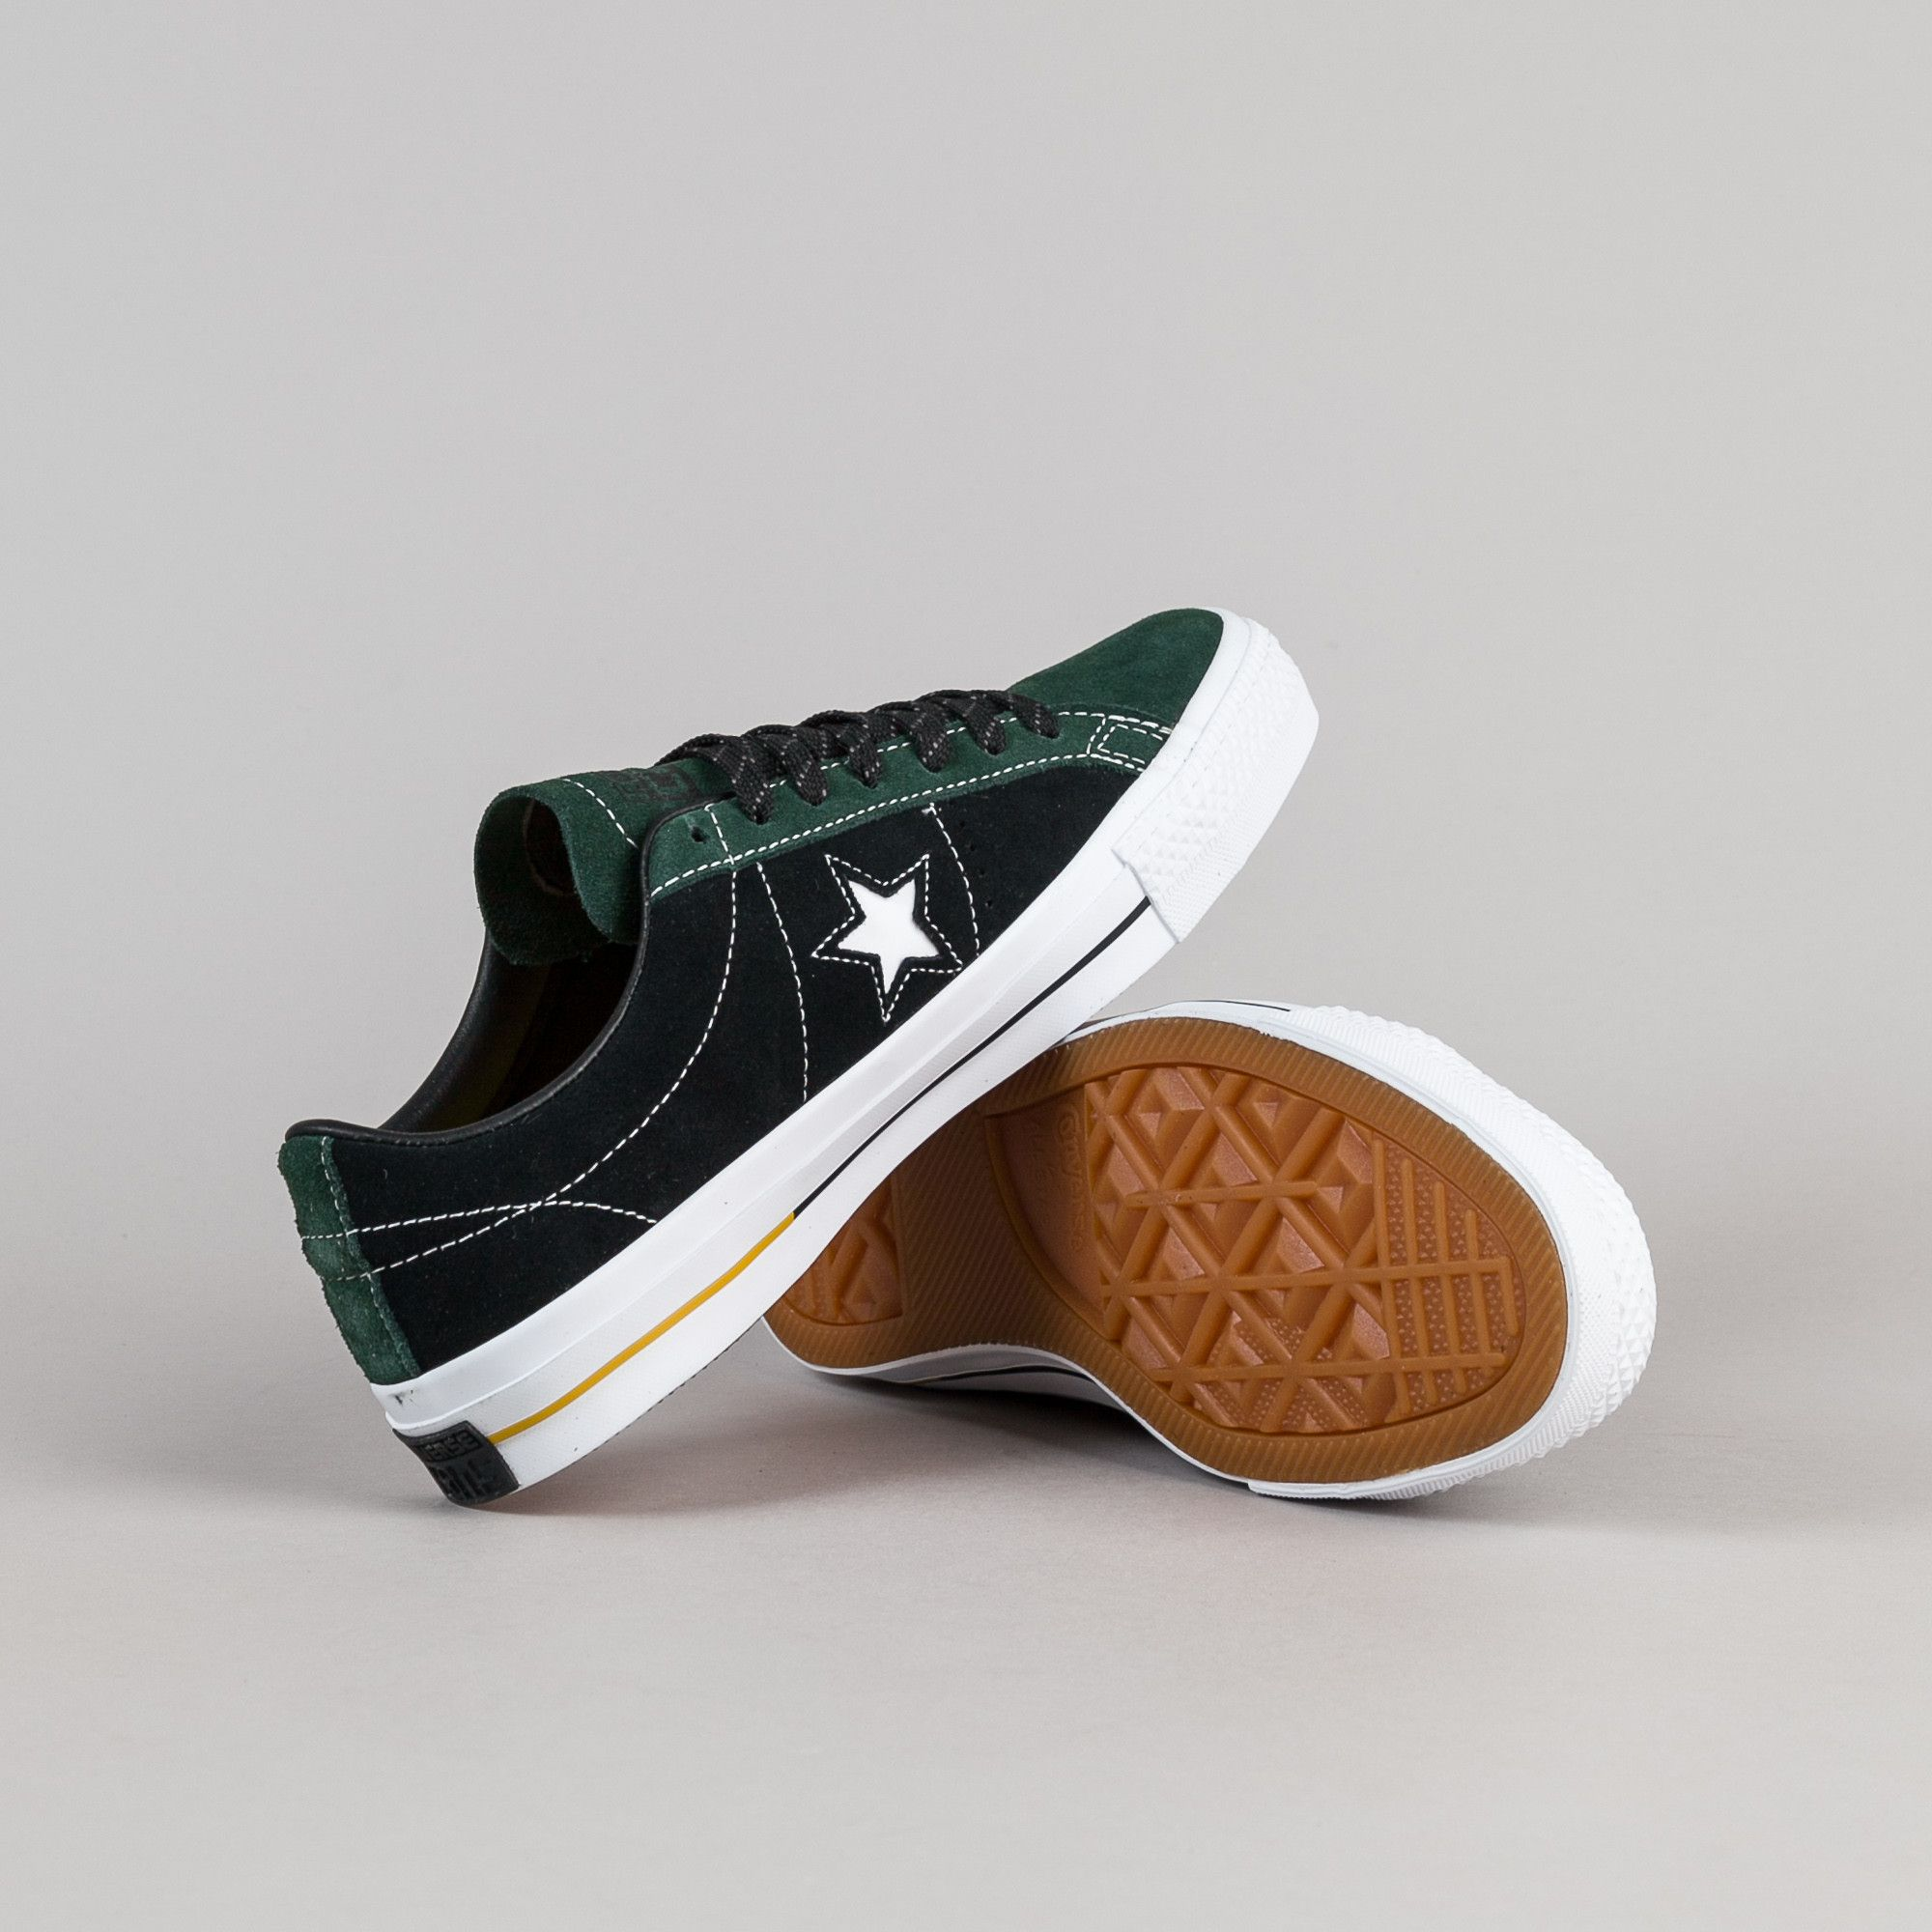 4bd5e77d8de1 Converse One Star Pro Suede OX Shoes - Deep Emerald   Black .